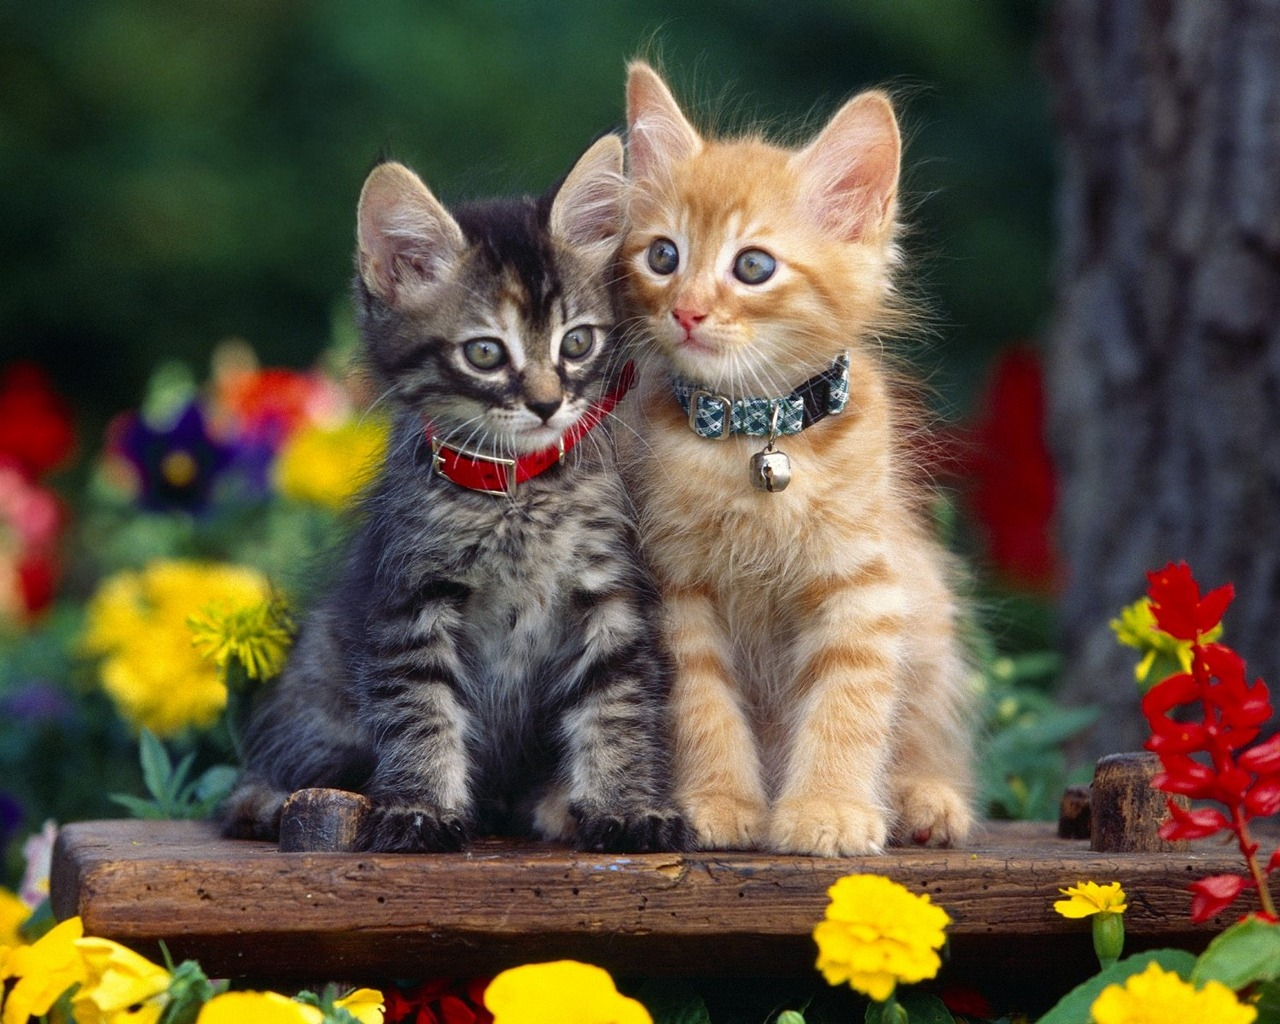 Flower In The Garden New Cats Wallpaper Cute Funny Beautiful